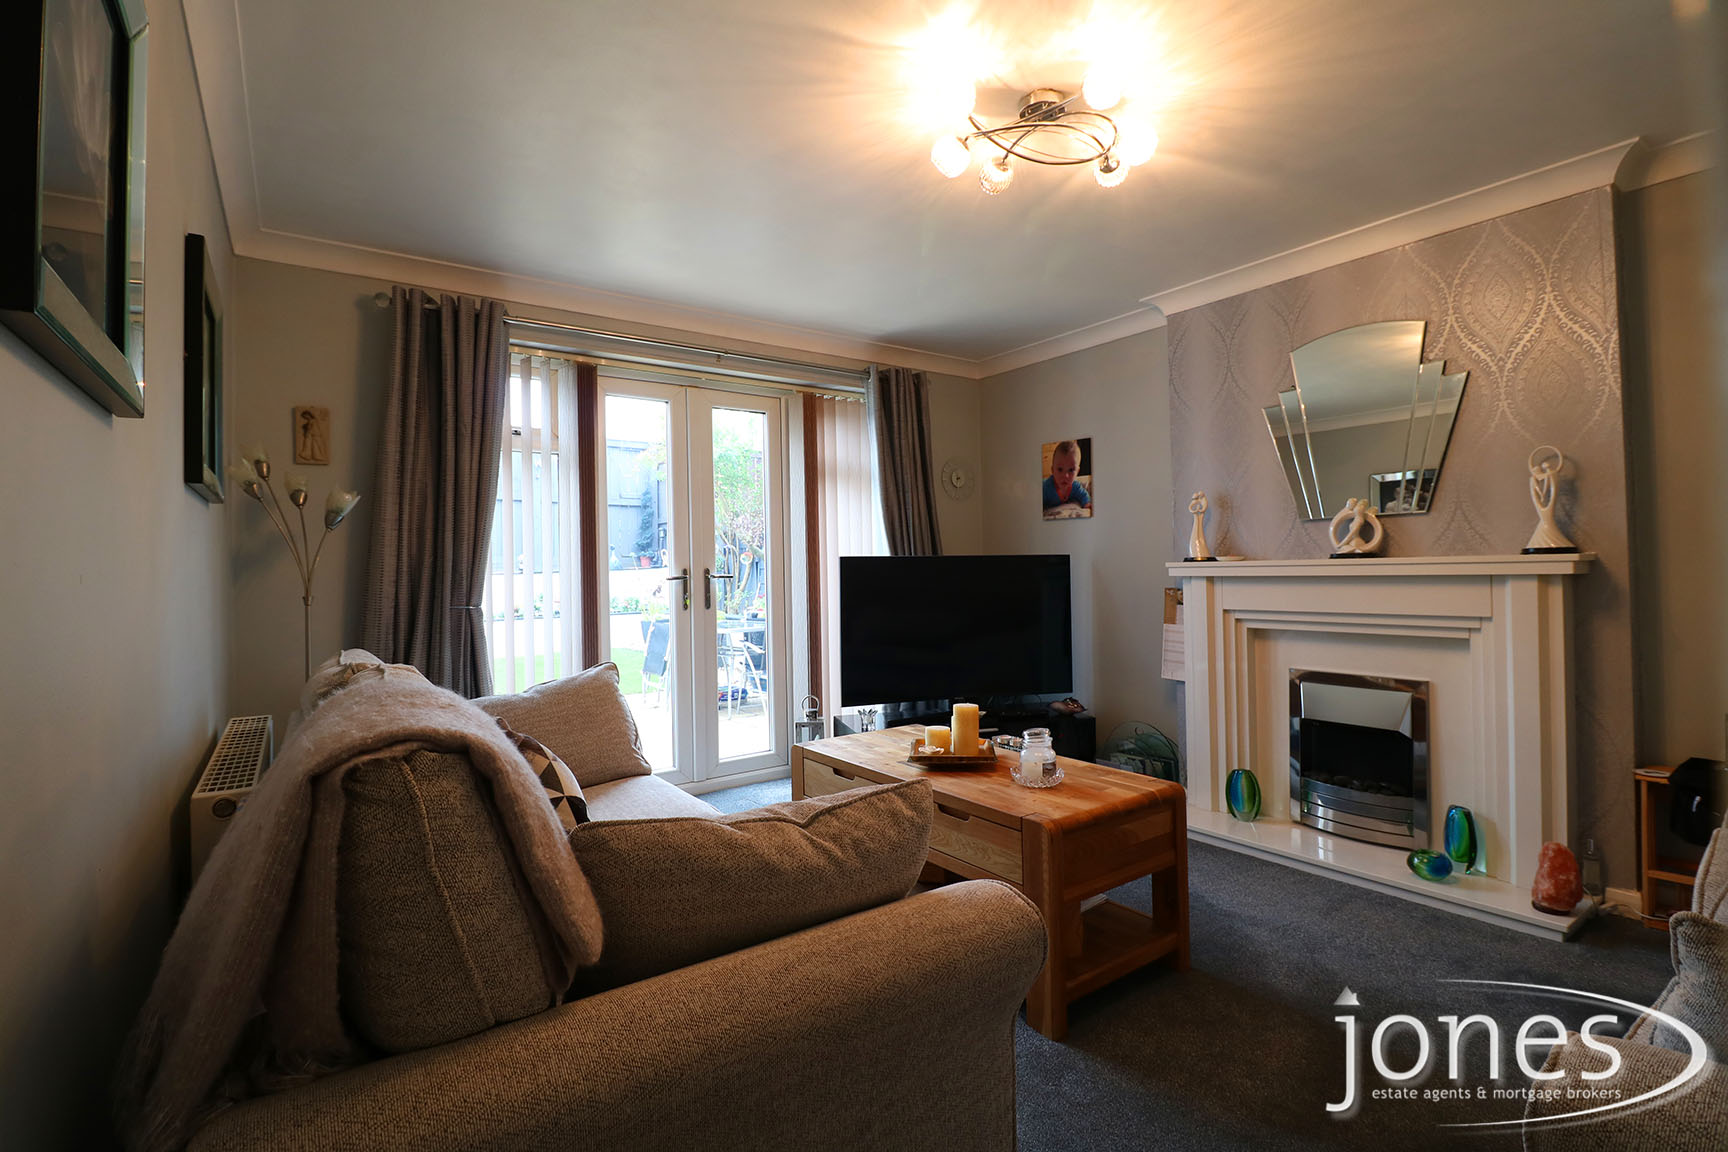 Home for Sale Let - Photo 02 West End Way, Stockton on Tees, TS18 3UA